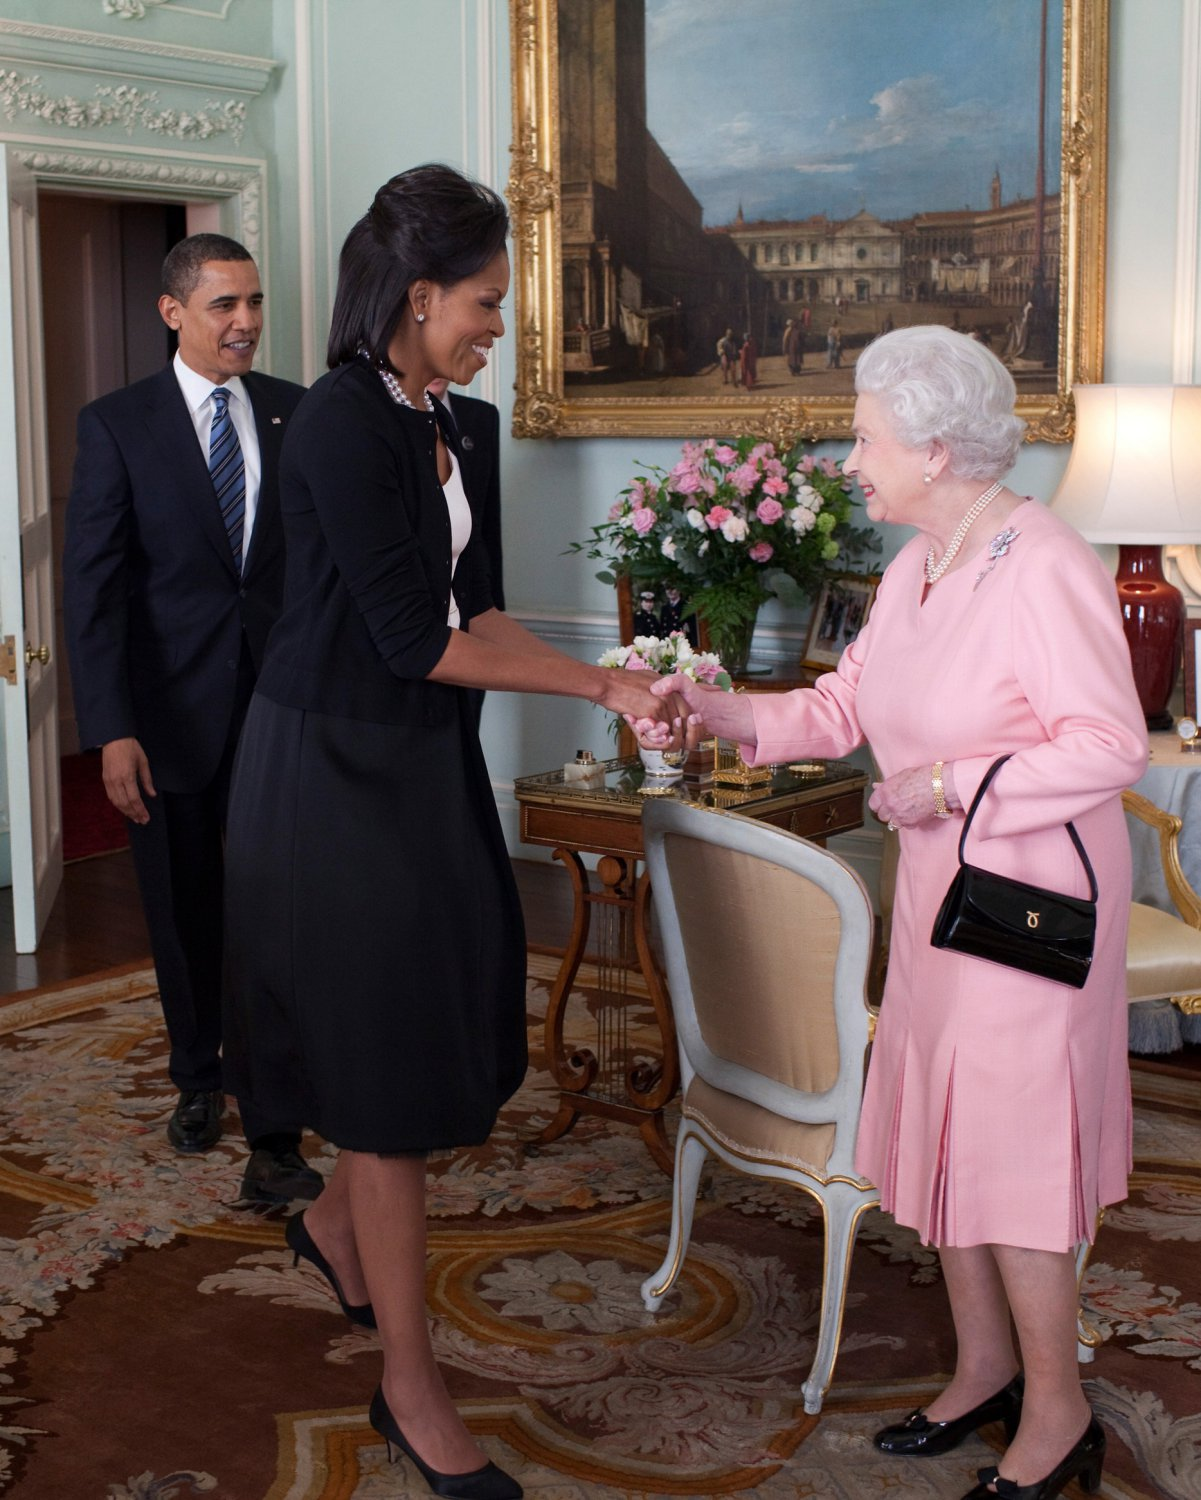 PRESIDENT BARACK OBAMA & MICHELLE GREETED BY QUEEN ELIZABETH 8X10 PHOTO (ZY-372)